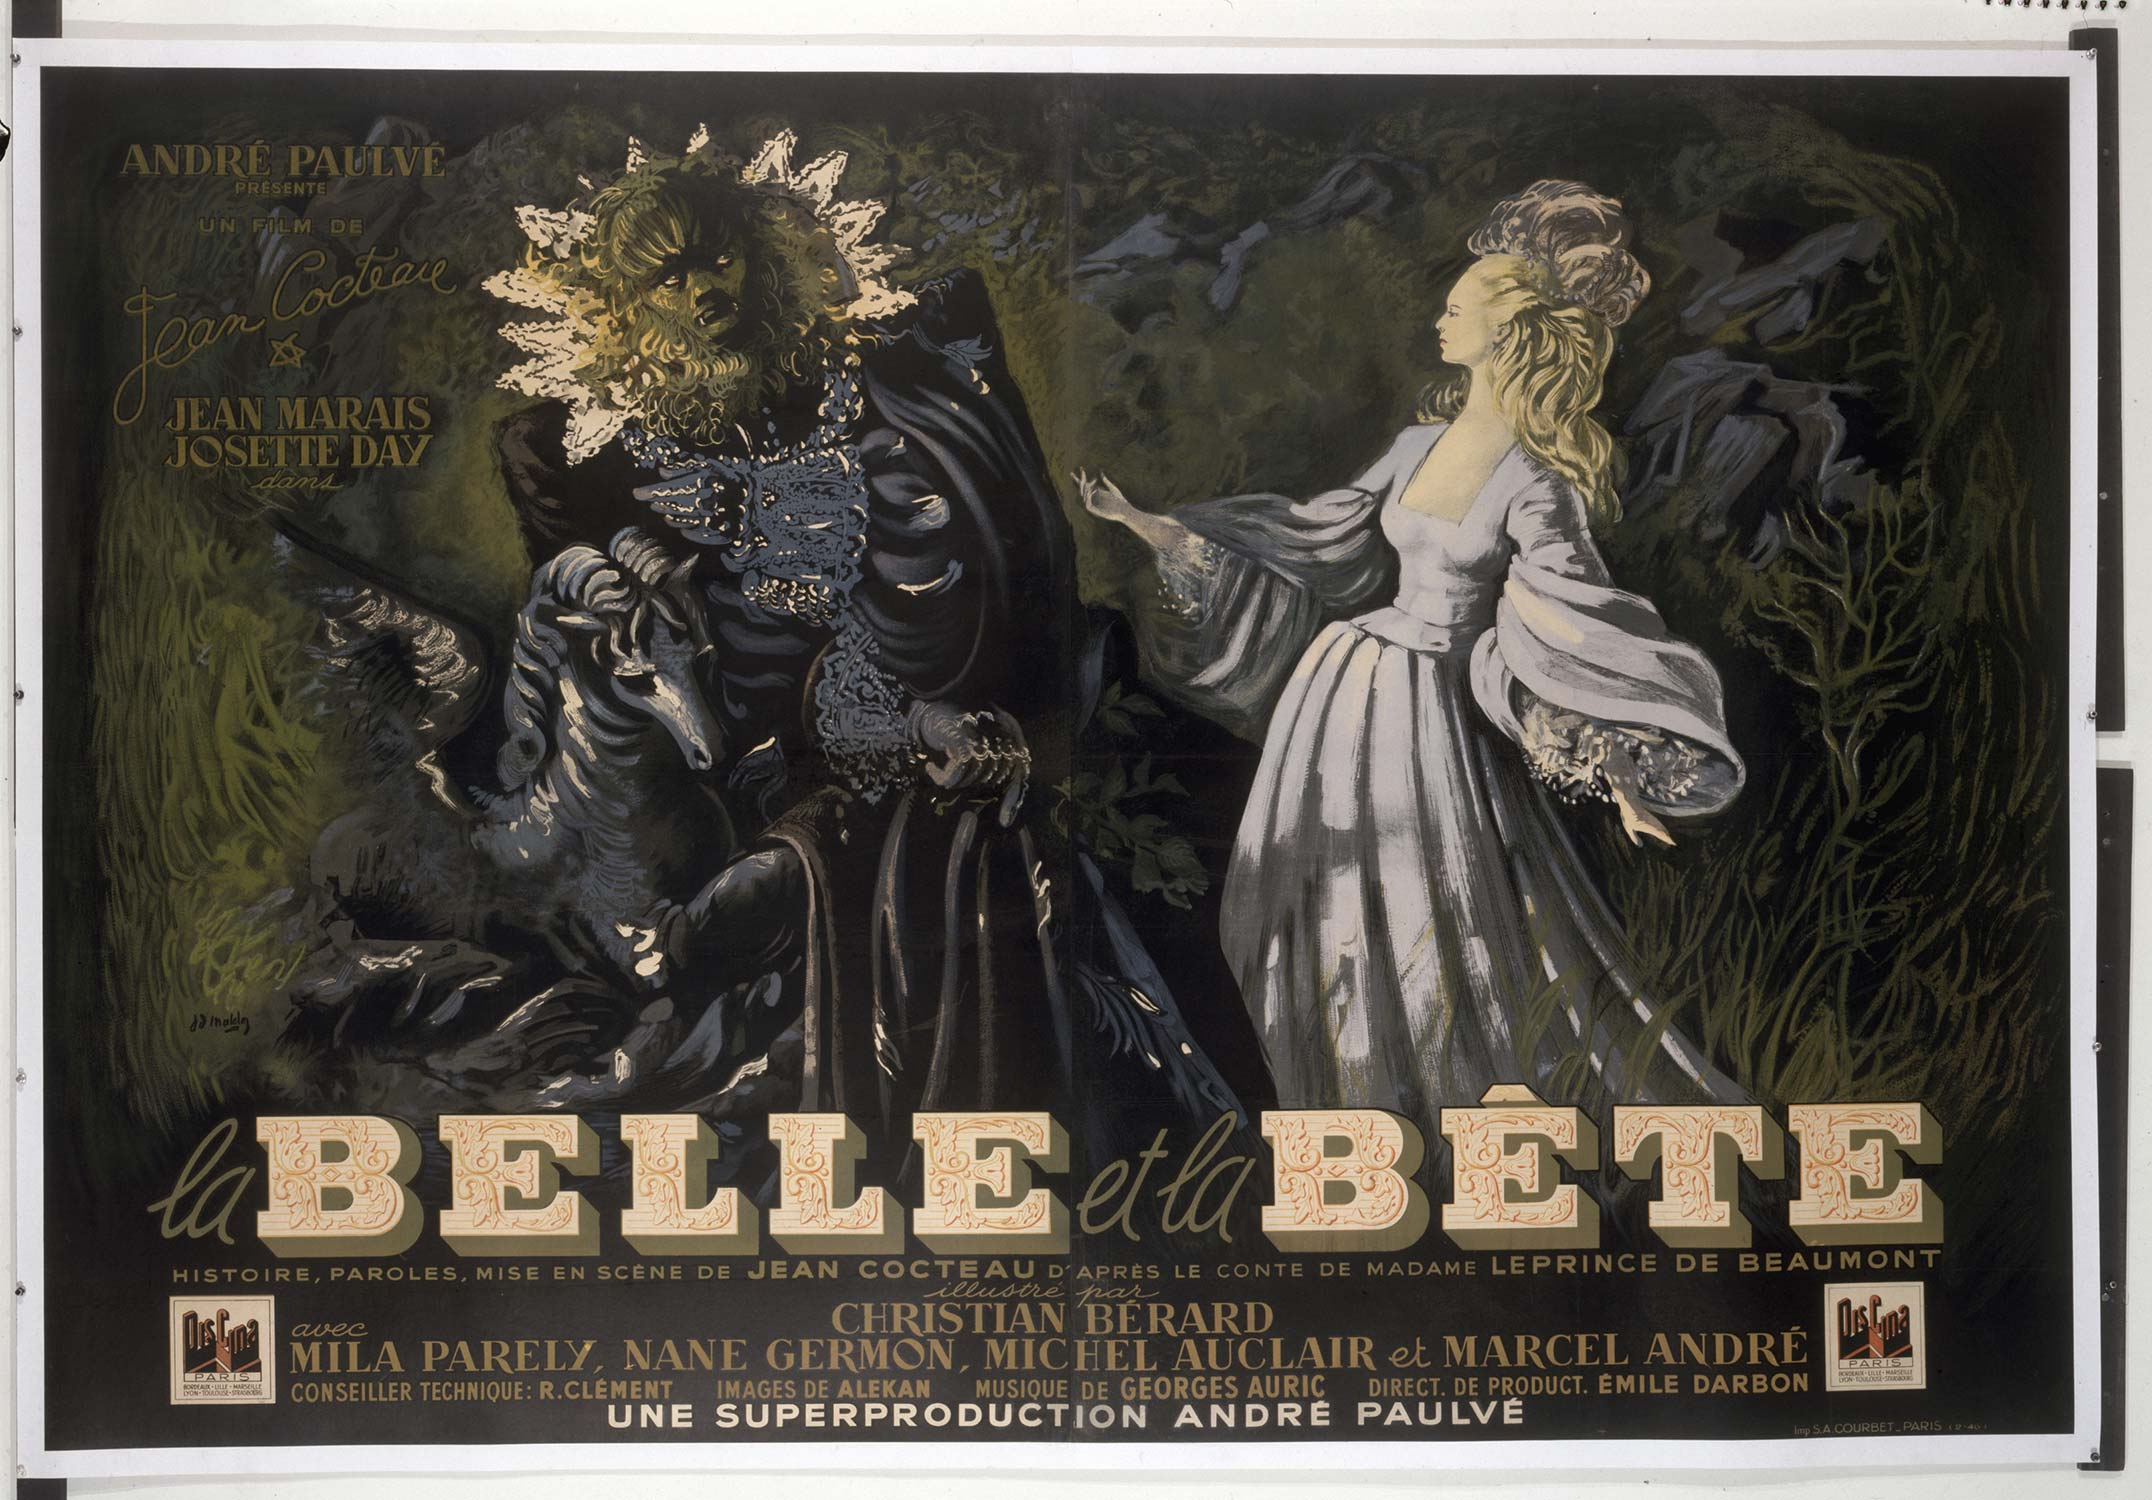 La Belle et la Bete Movie Poster